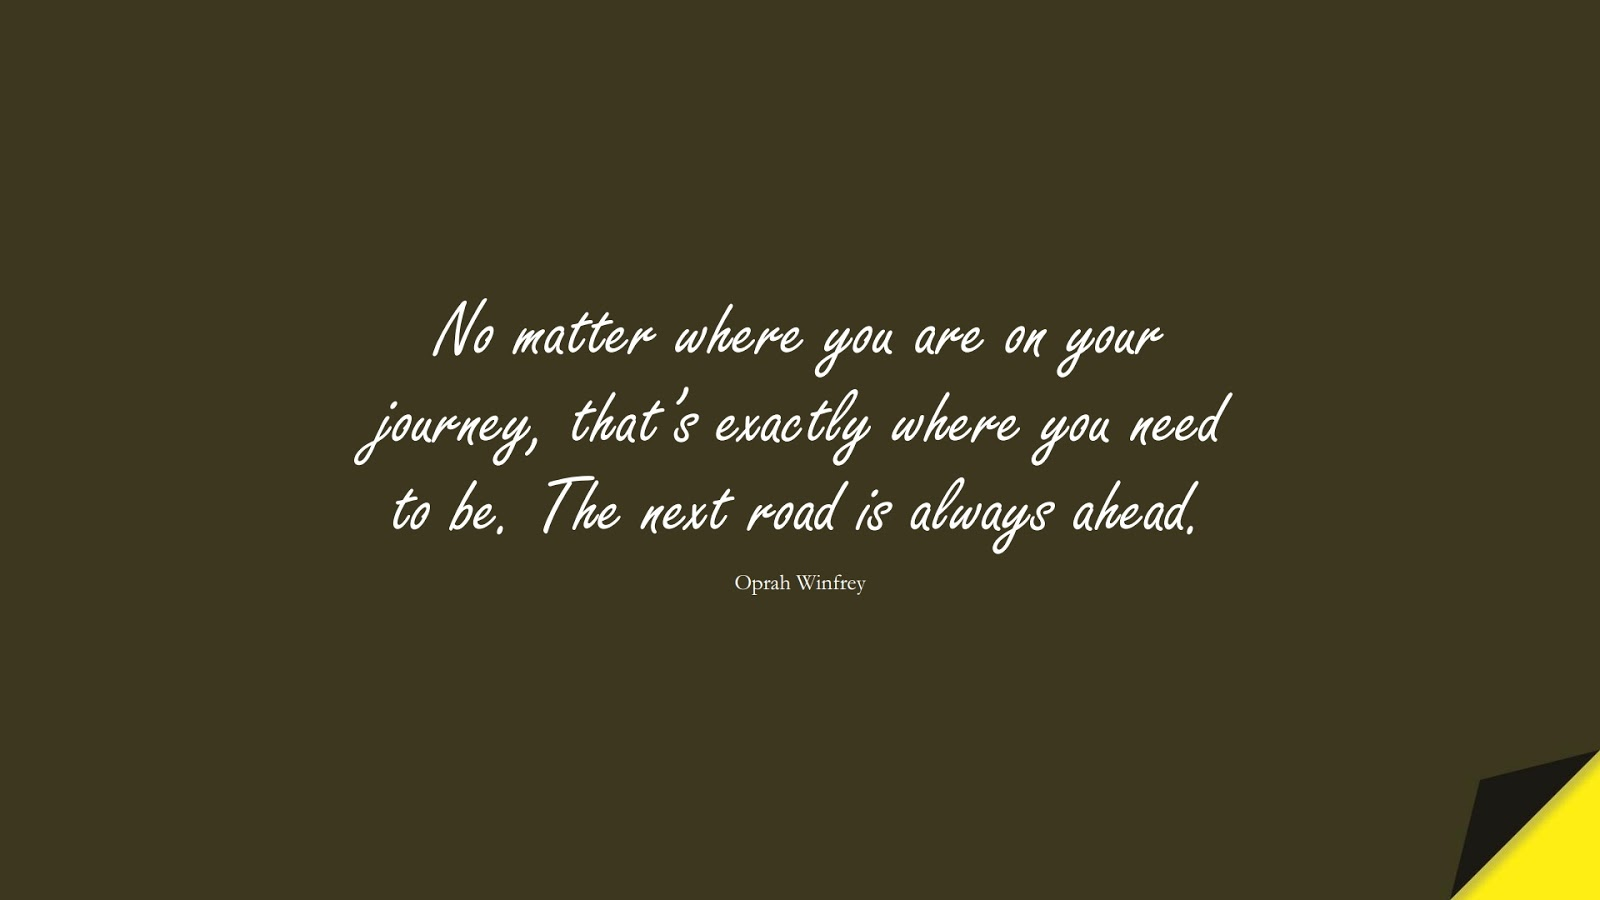 No matter where you are on your journey, that's exactly where you need to be. The next road is always ahead. (Oprah Winfrey);  #HopeQuotes